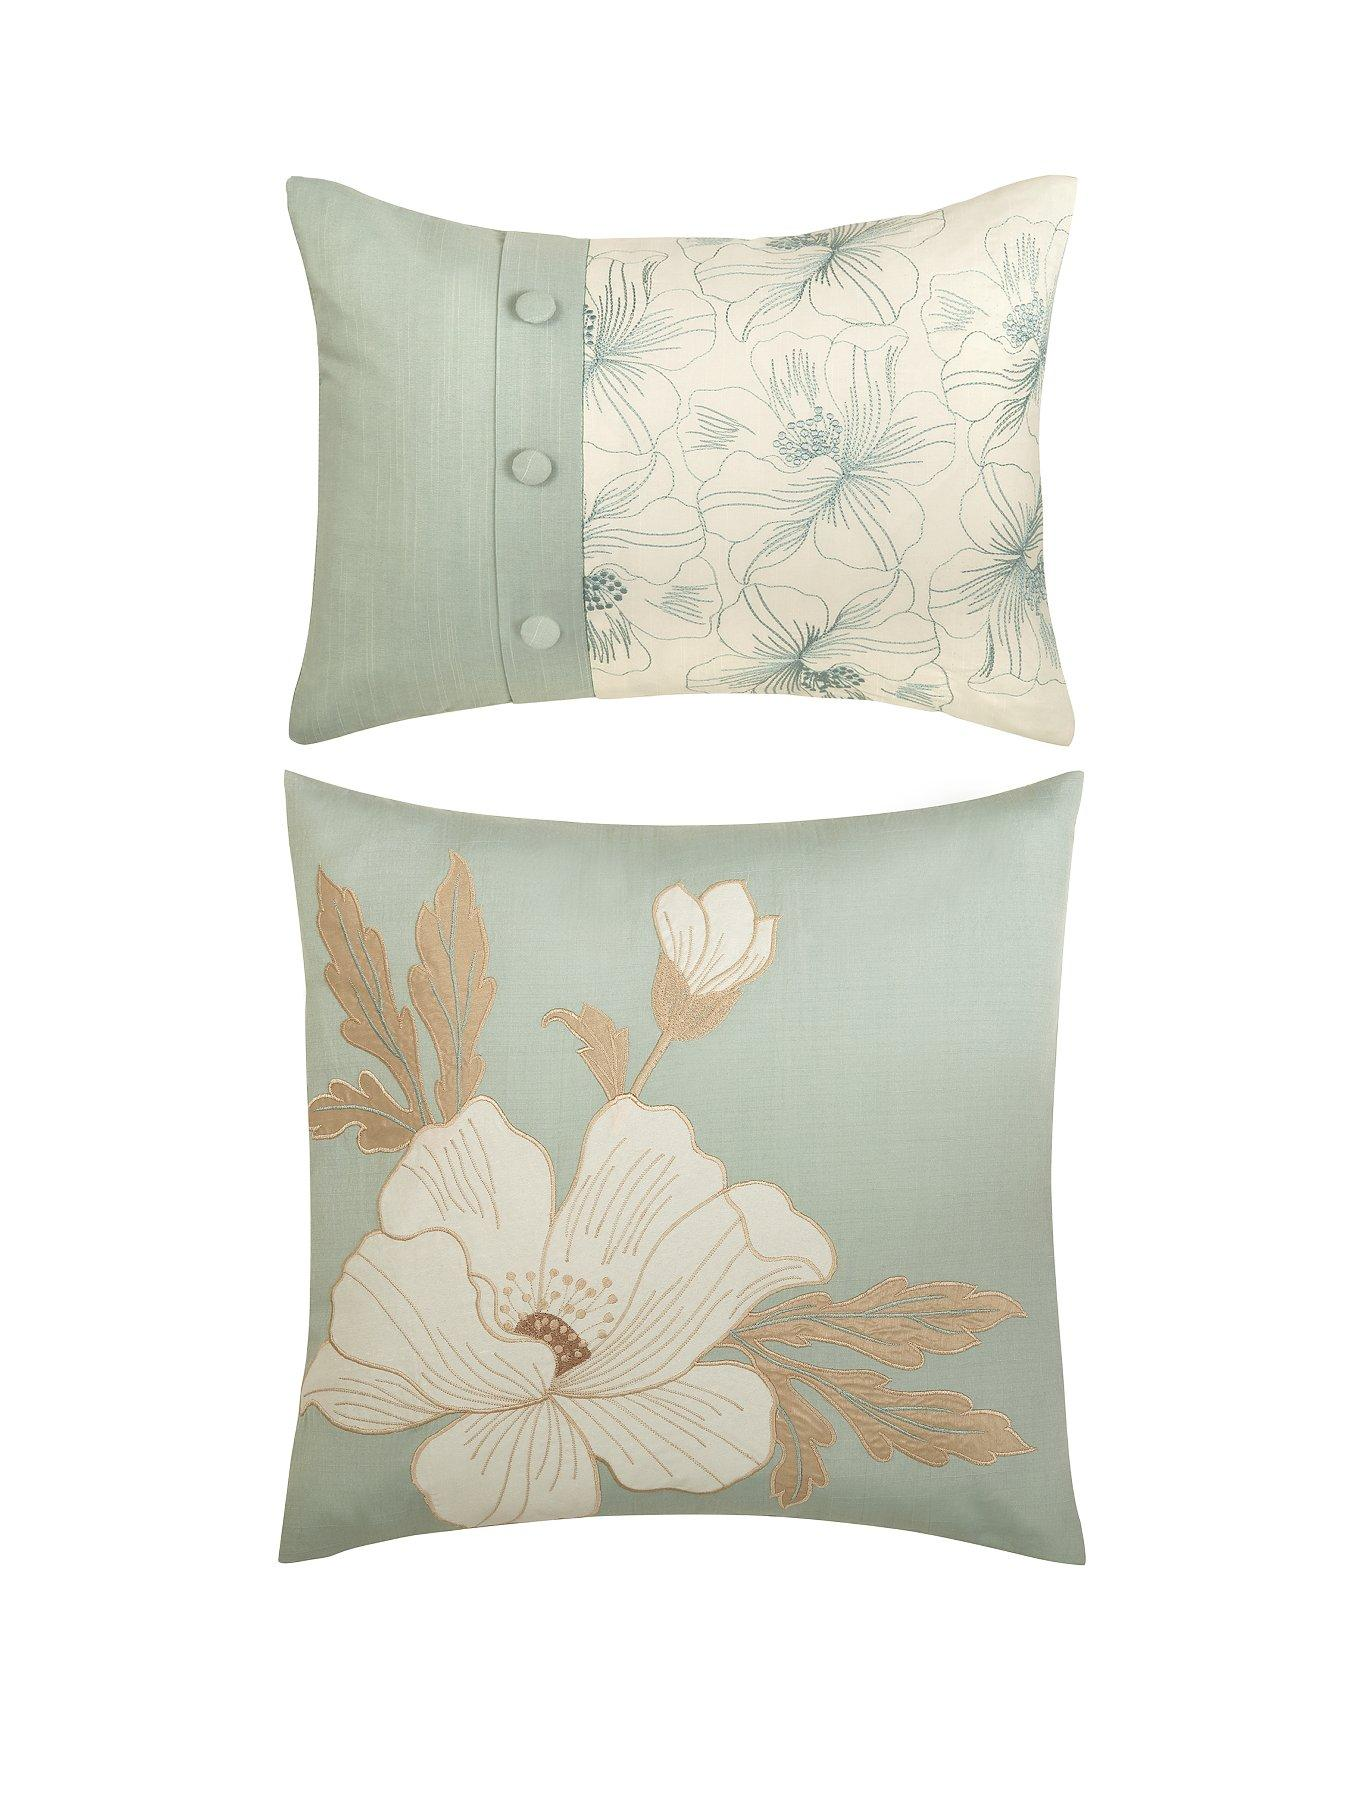 Magnolia Filled Cushions (2 Pack)